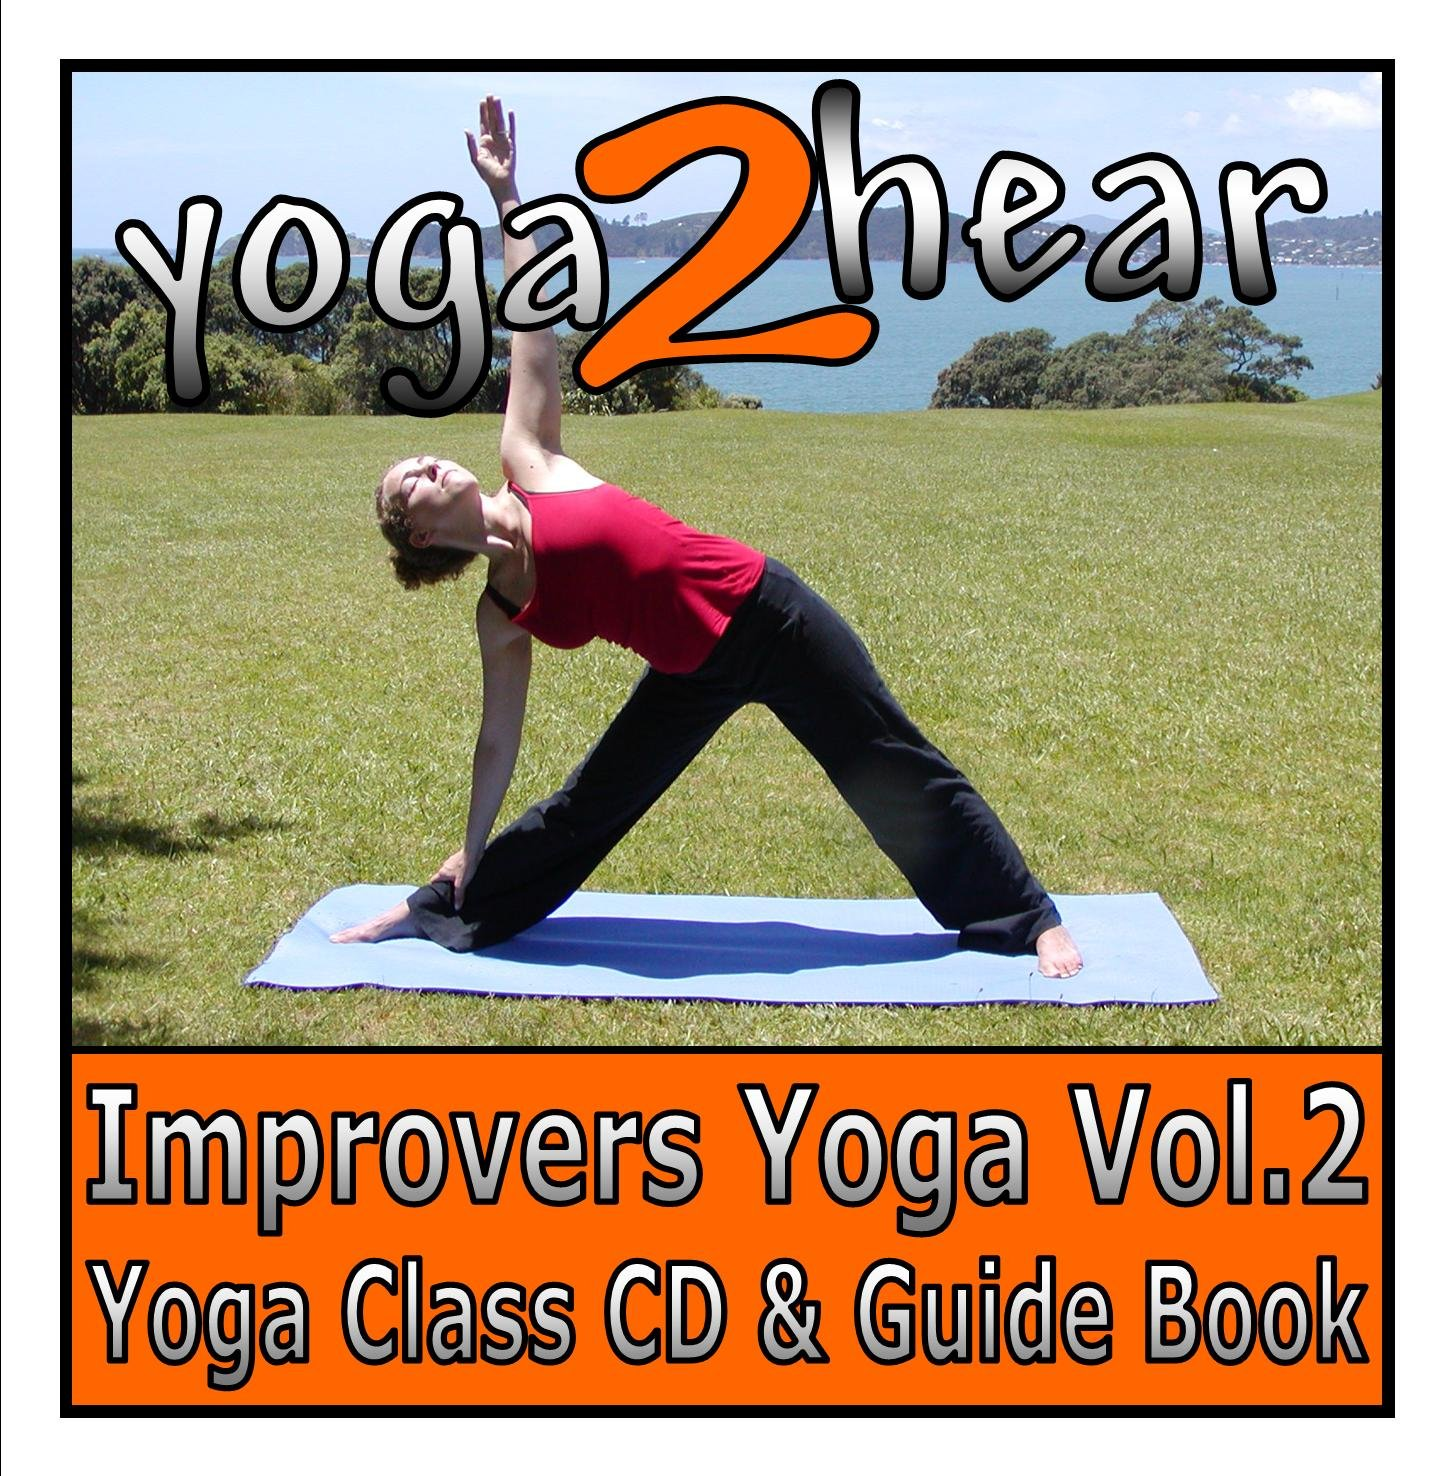 Improvers Yoga Vol 2 - Instructional Yoga Class CD: Sue ...